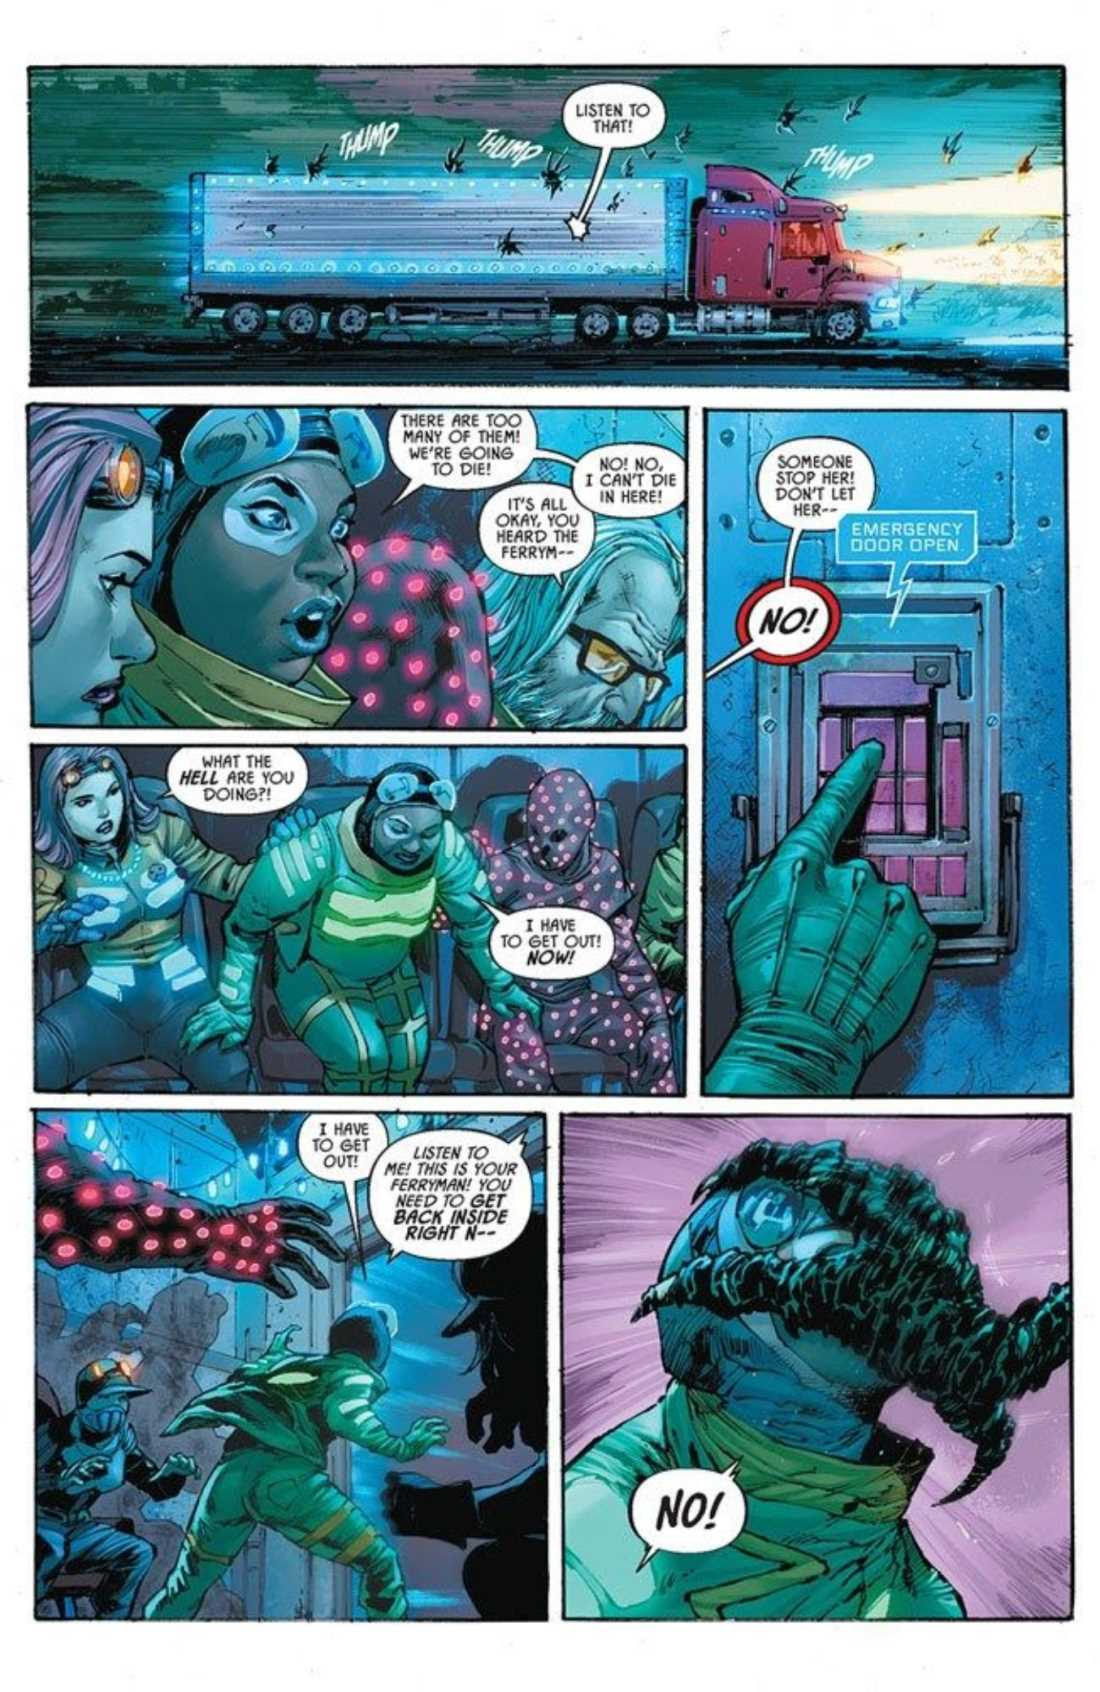 Nocterra #1 Preview Page Three